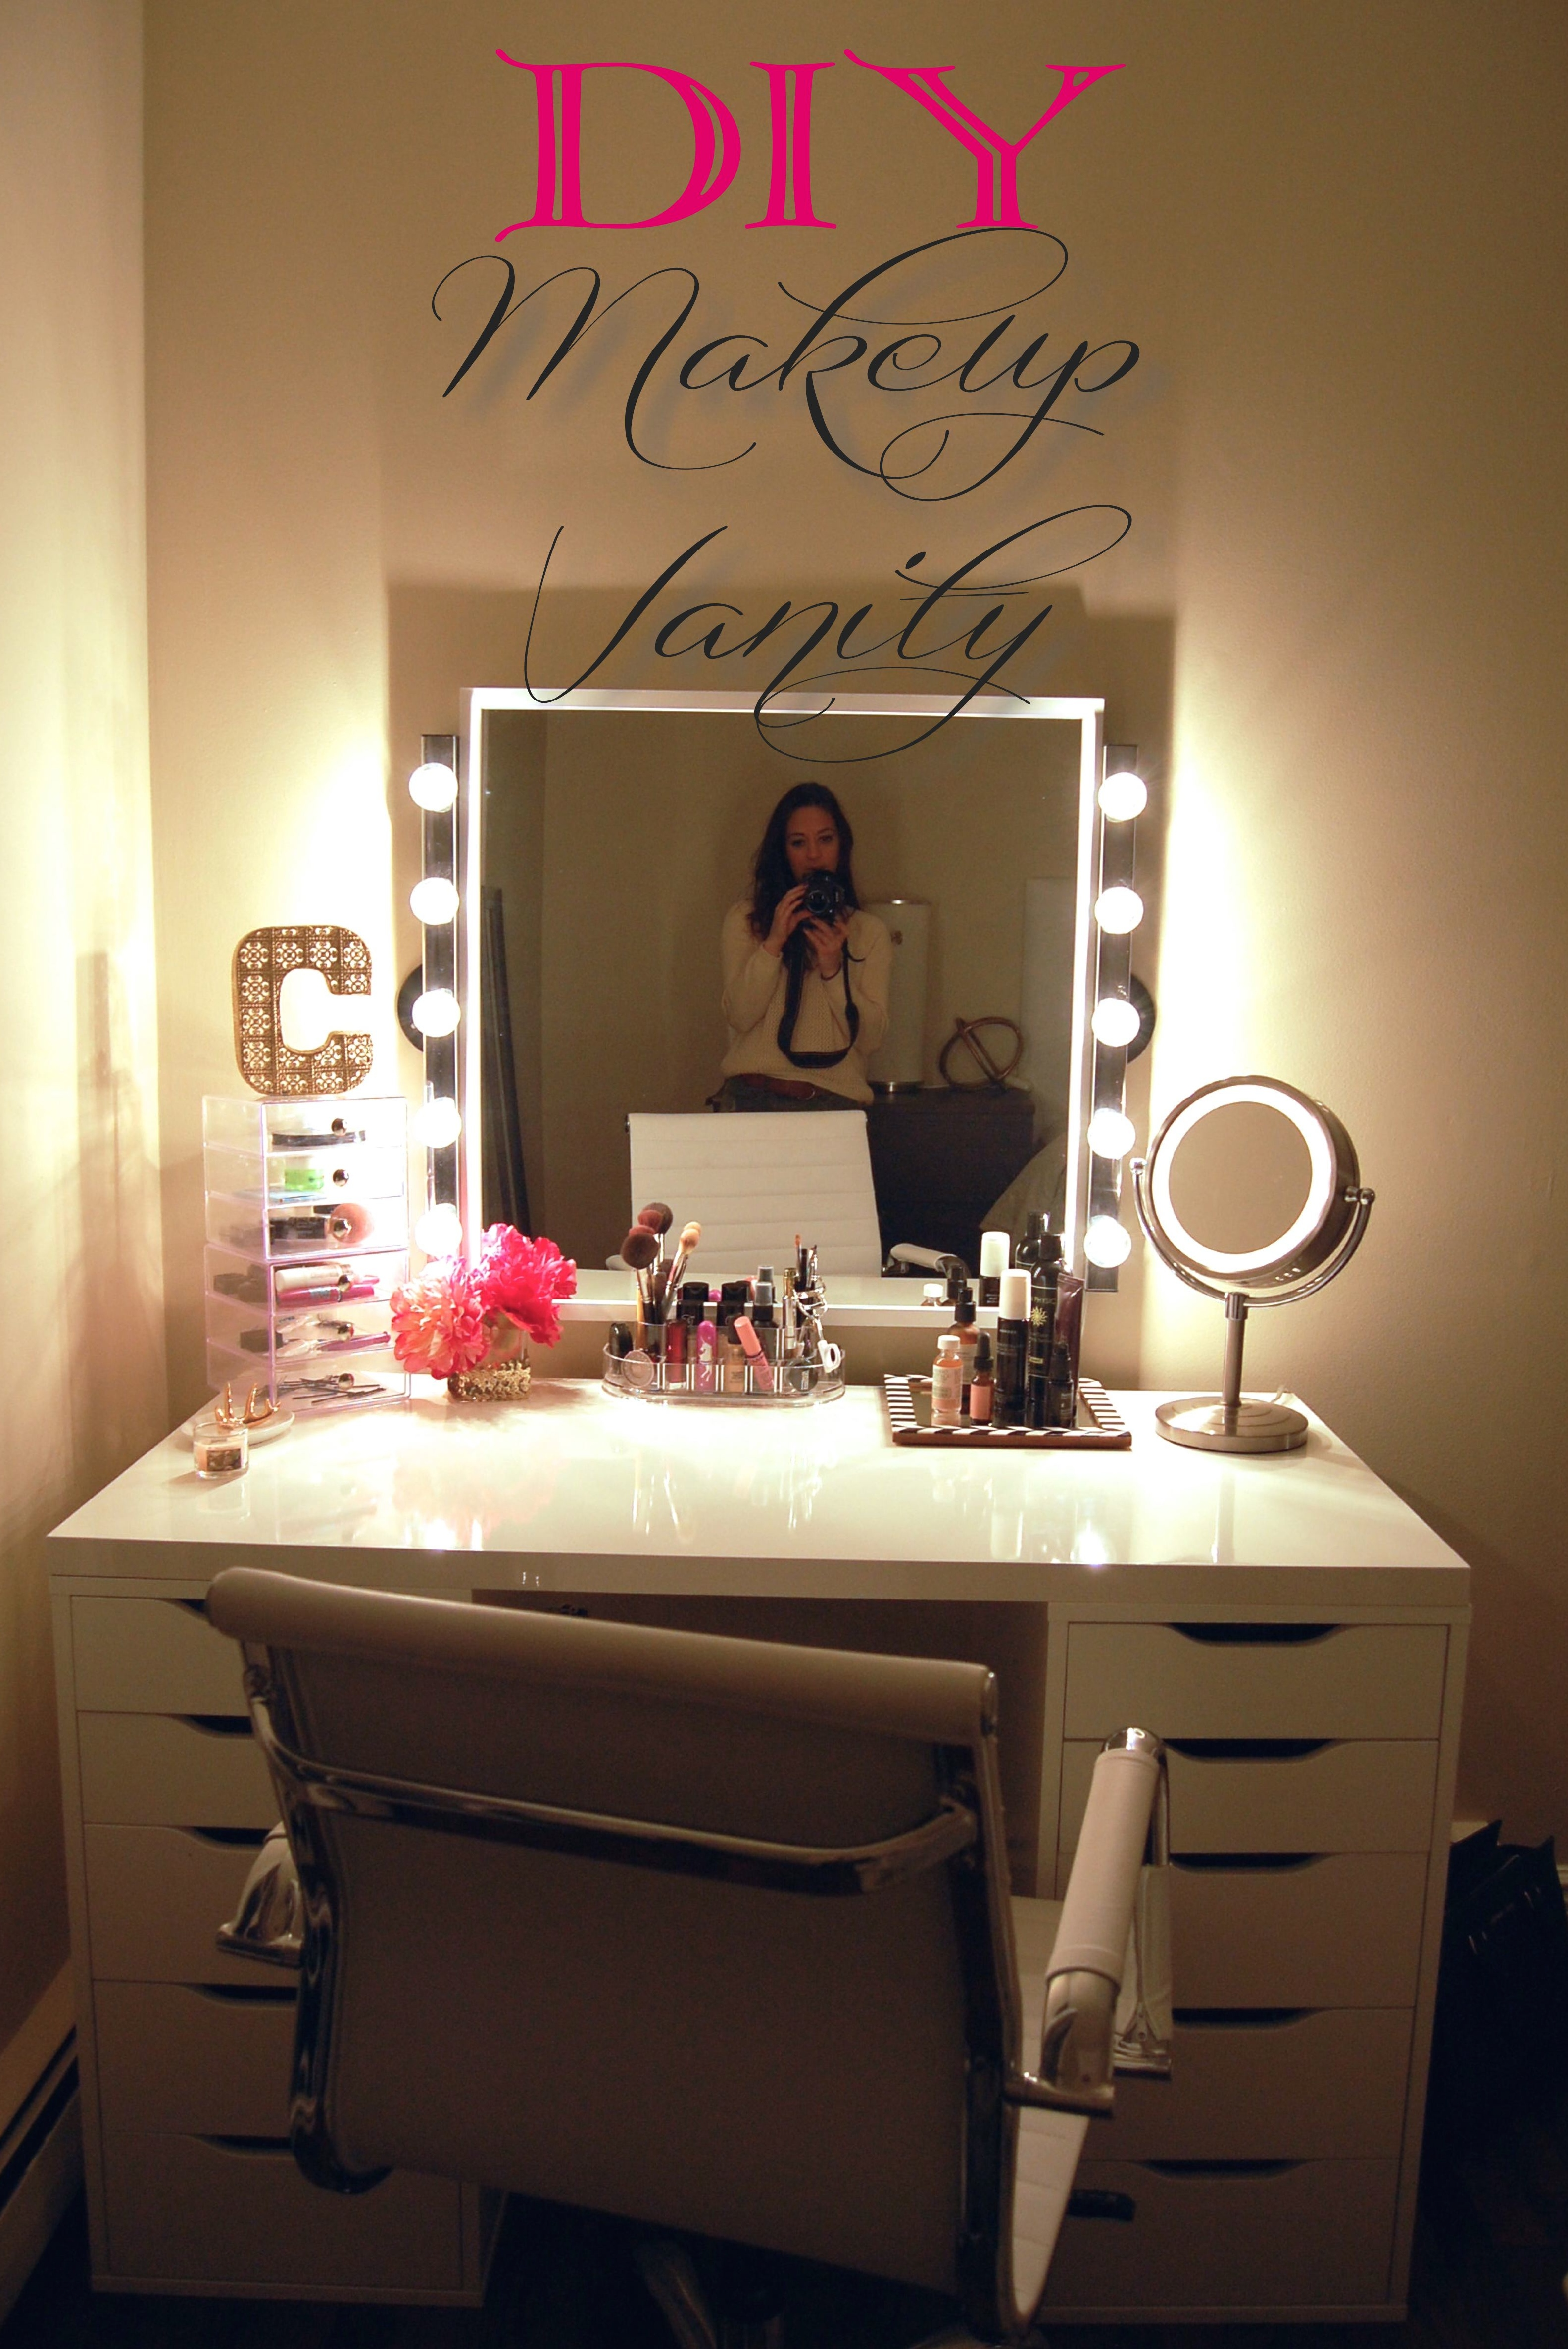 beautiful bathroom vanity with makeup station design-Excellent Bathroom Vanity with Makeup Station Layout